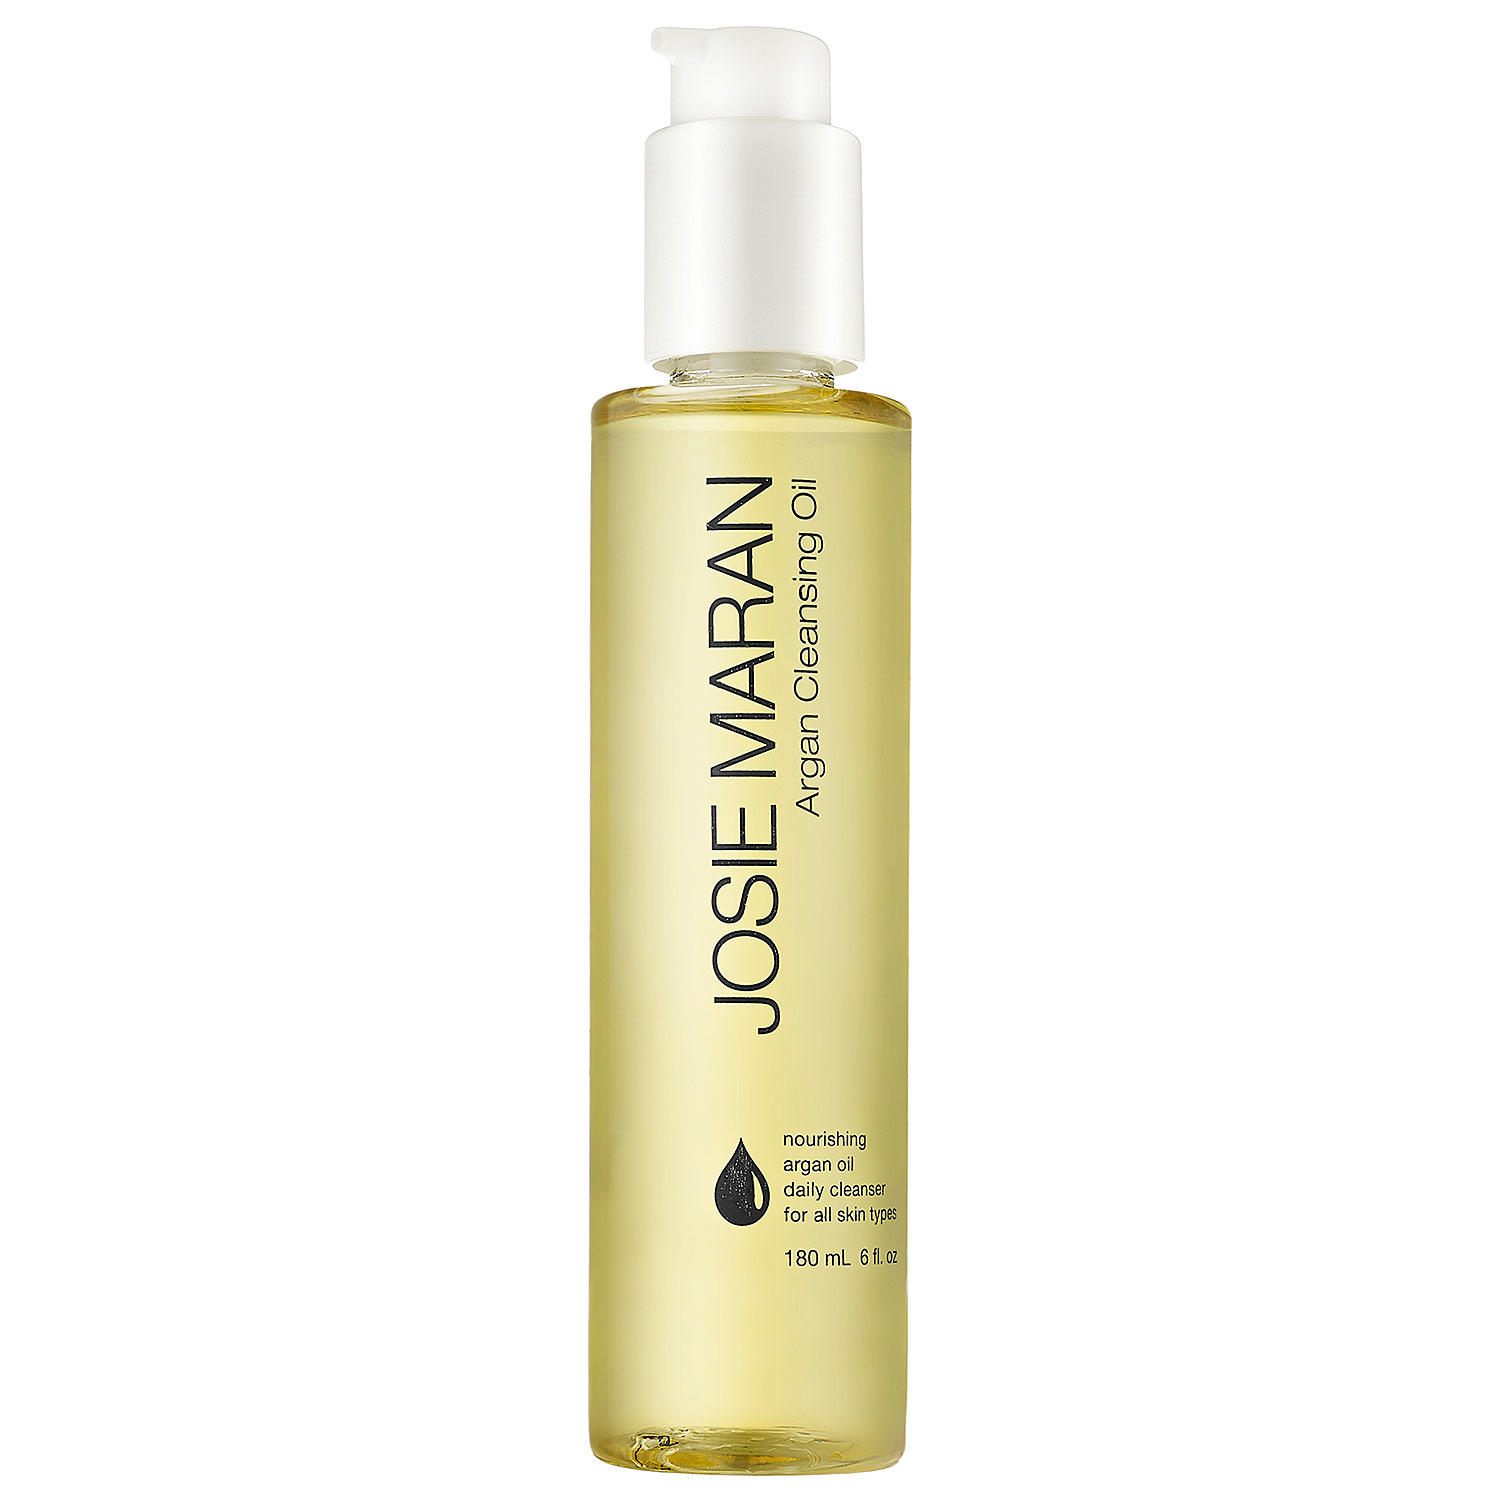 Josie Maran Argan Cleansing Oil 180ml